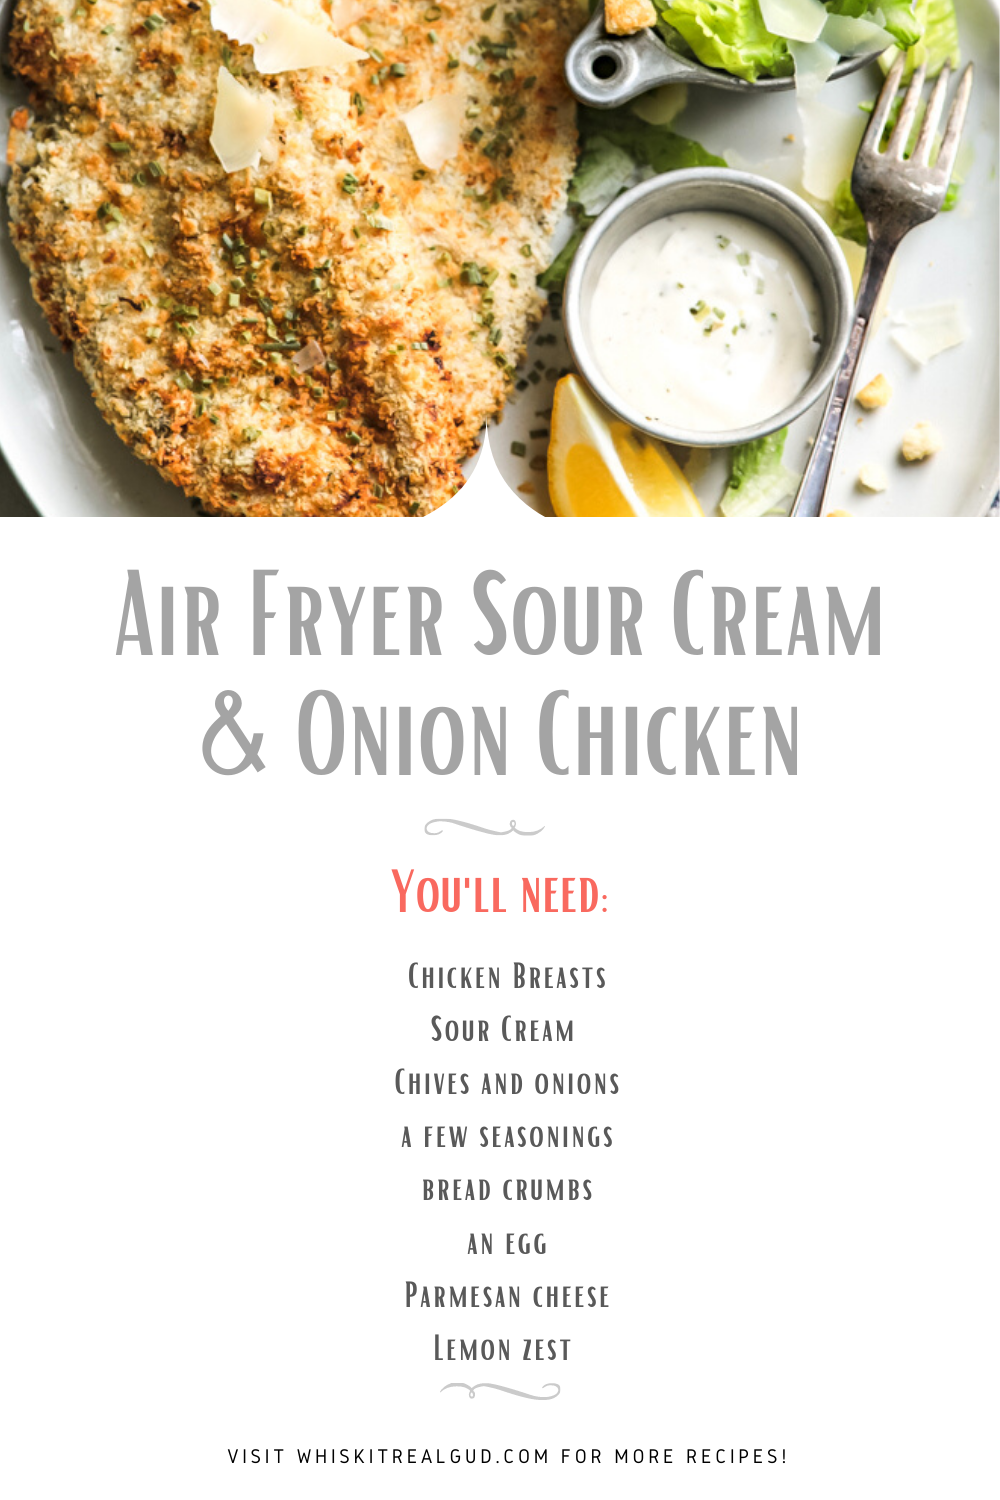 Air Fryer Sour Cream And Onion Chicken Recipe In 2020 Fast Chicken Recipes Easy Cooking Recipes Baked Chicken Recipes Easy